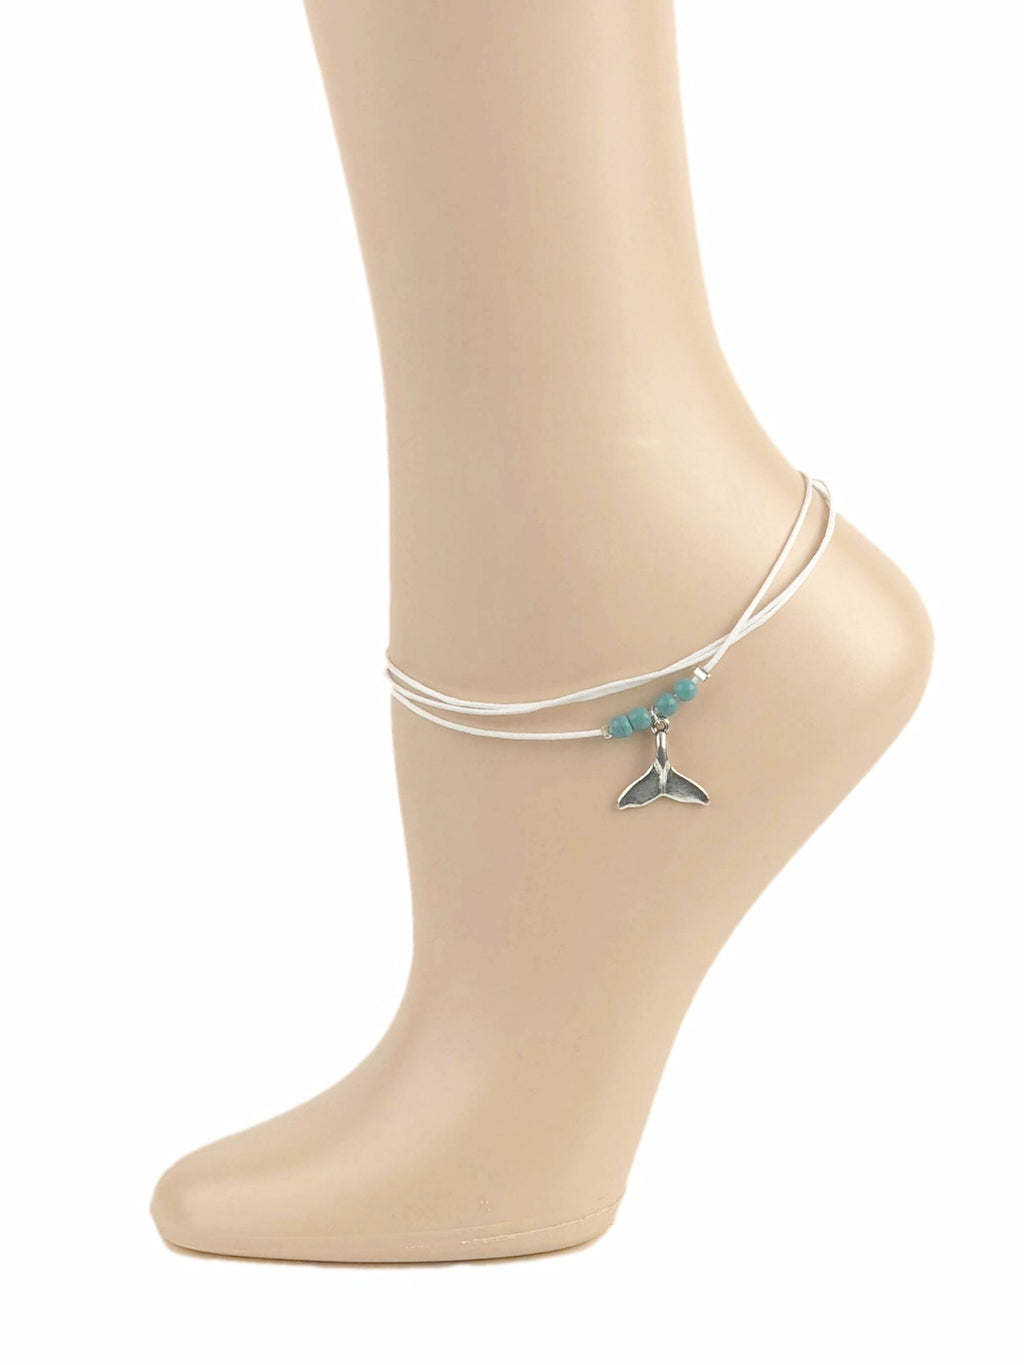 Elsa Anklet - Global Trendz Fashion®